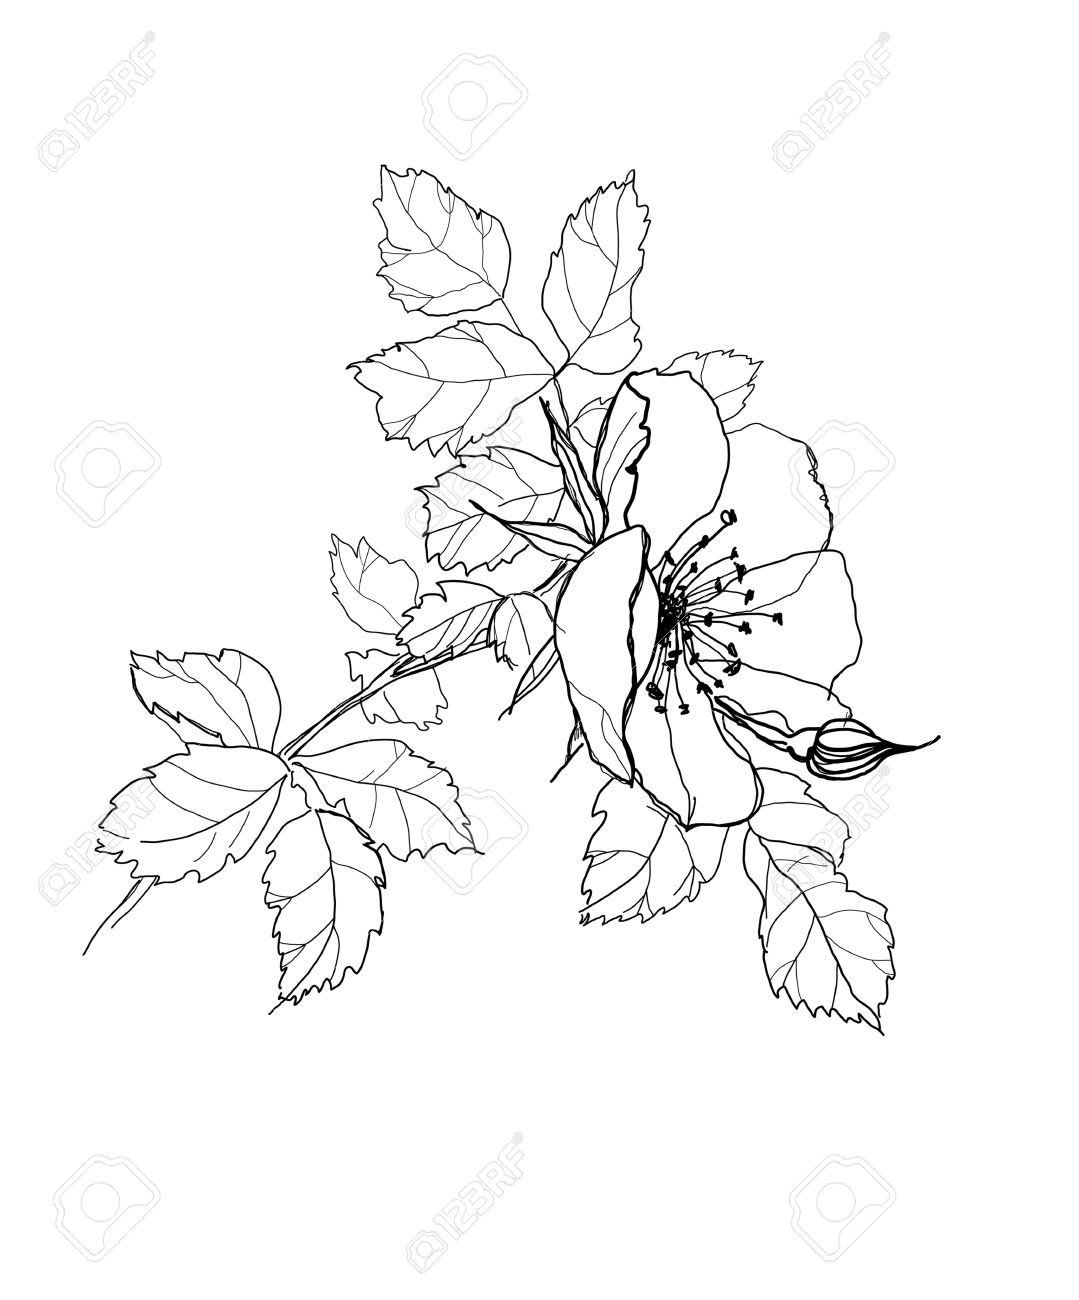 1079x1300 Dog Rose Flower Pencil Drawing Royalty Free Cliparts, Vectors,